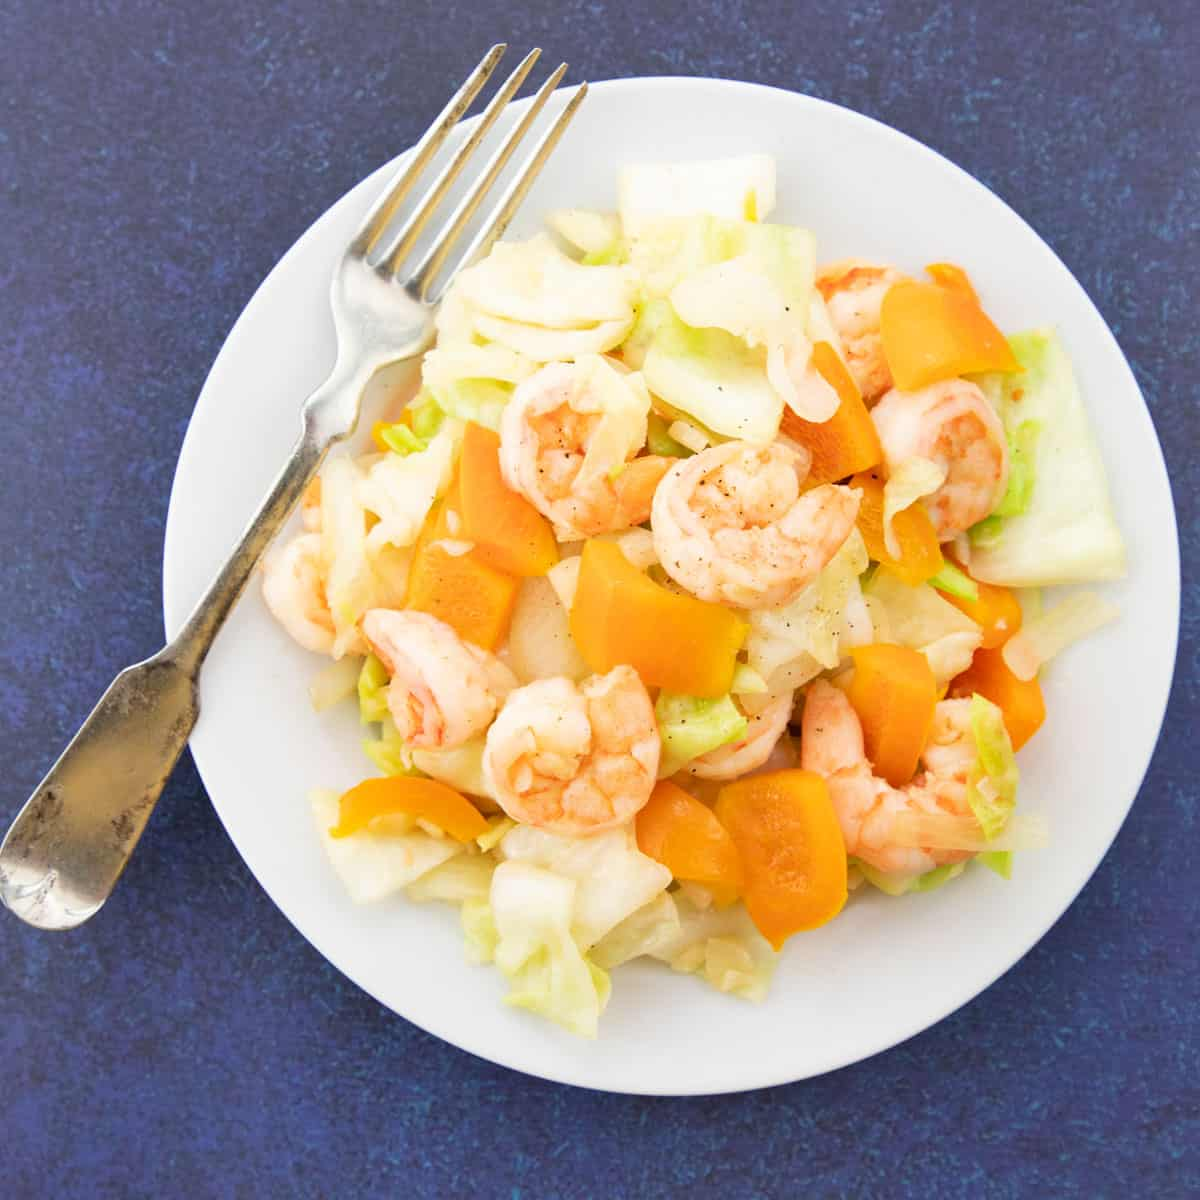 sauteed cabbage with shrimp on white plate with fork.